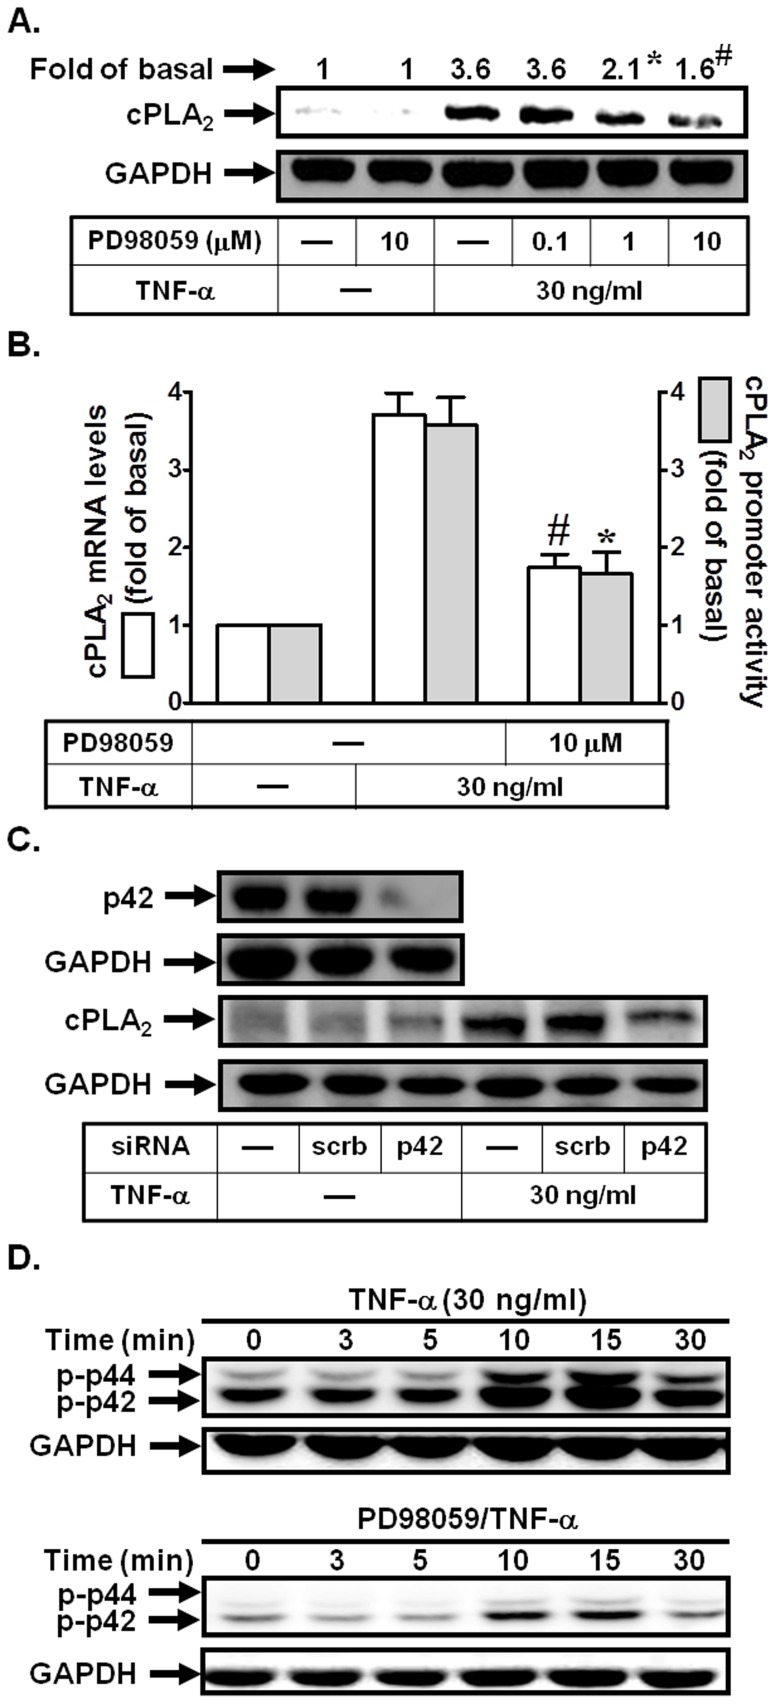 p42/p44 MAPK is involved in TNF-α-induced cPLA 2 expression. (A) Cells were pretreated with PD98059 for 1 h, and then incubated with TNF-α for 24 h. The protein levels of cPLA 2 were determined by Western blot. (B) Cells were pretreated with PD98059 (10 µM) for 1 h, and then incubated with TNF-α for 6 h. cPLA 2 mRNA levels and promoter activity were determined. (C) Cells were transfected with scrambled or p42 siRNA, and then incubated with TNF-α for 24 h. The protein levels of p42 and cPLA 2 were determined. (D) Cells were pretreated with or without PD98059 (10 µM) for 1 h, and then incubated with TNF-α for the indicated time intervals. The levels of phospho-p42/p44 MAPK were determined. Data are expressed as mean±S.E.M. of three independent experiments. * P